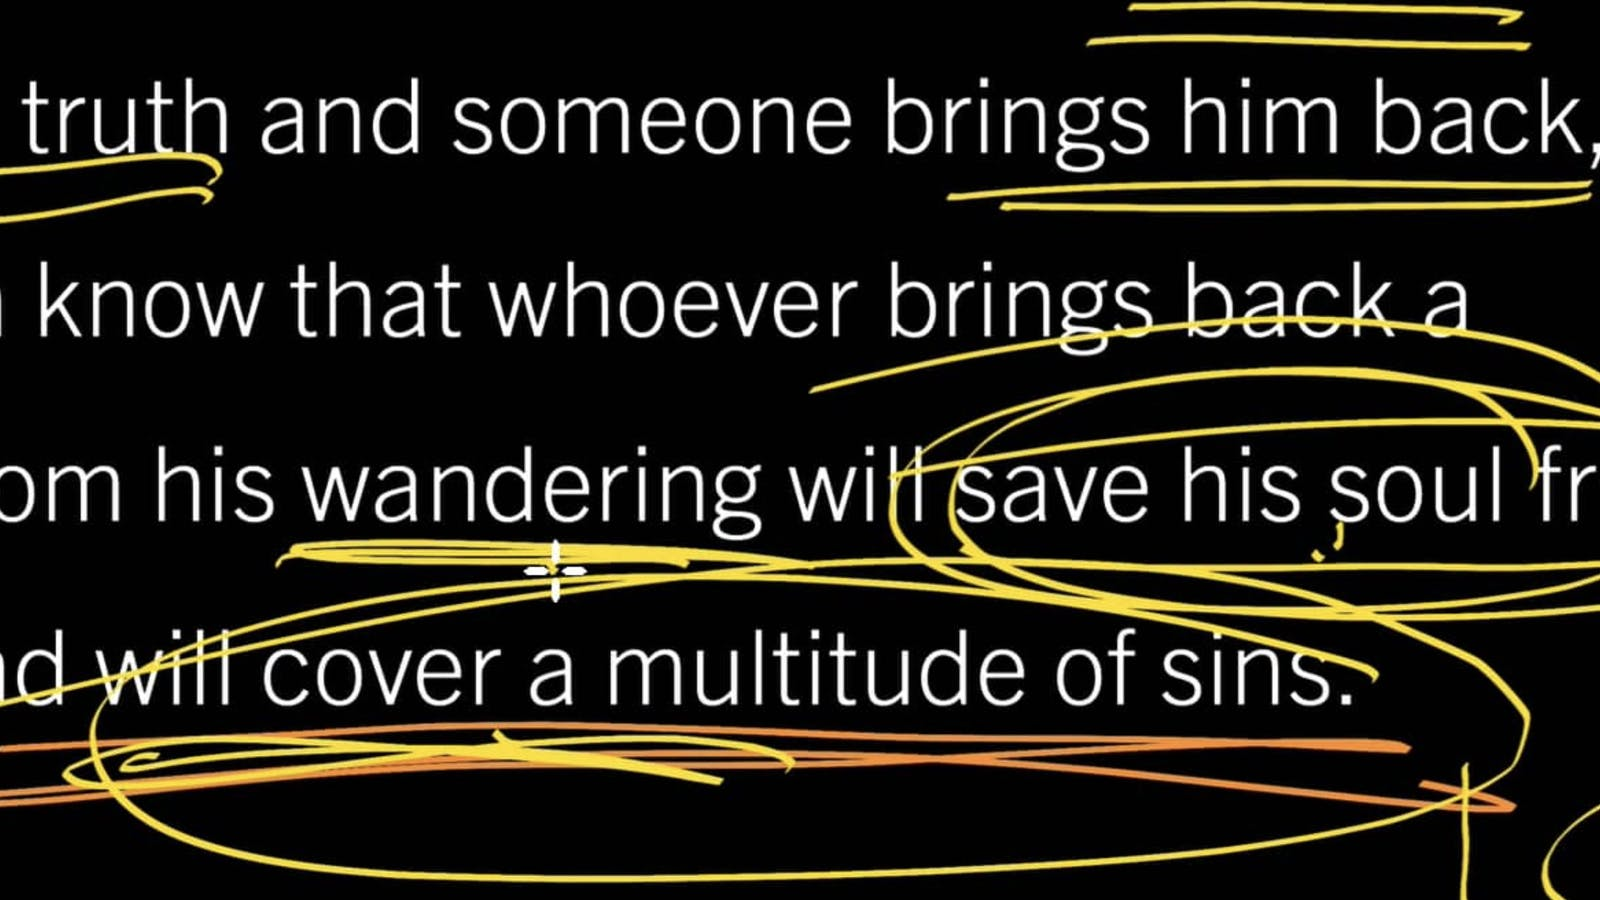 1 Peter 4:8: Only Love Can Cover Sin | Desiring God